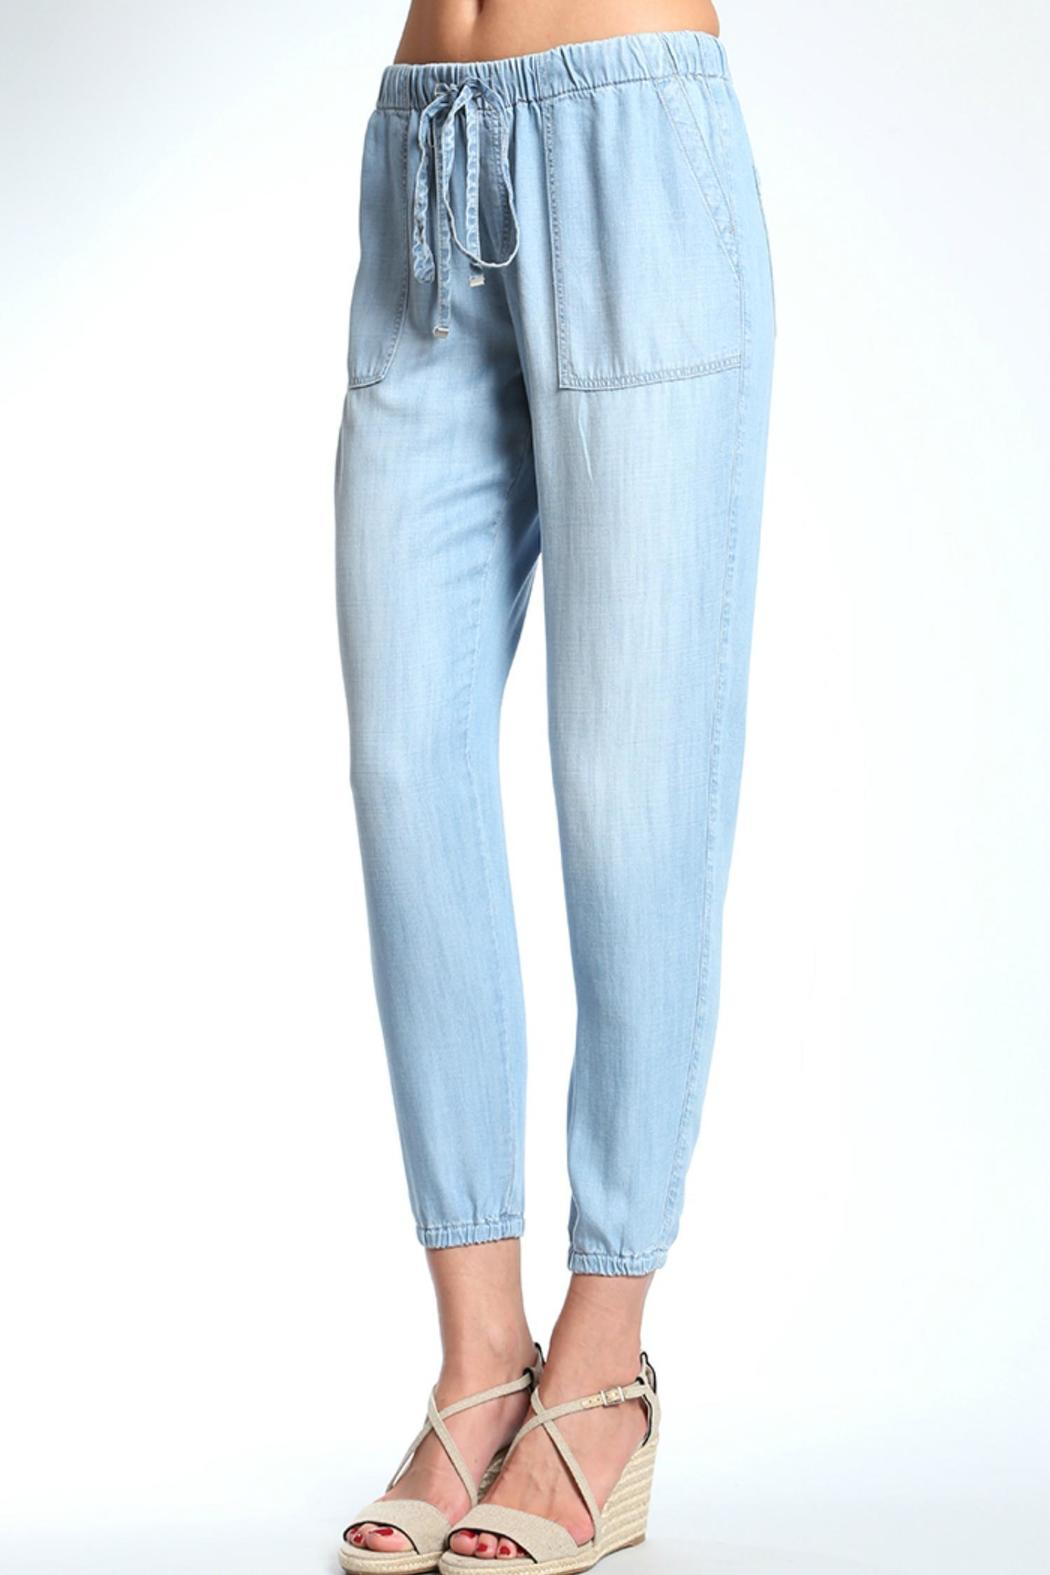 Mavi Jeans Slouchy Brushed Tencel Pants from Canada by Ragdolz ...